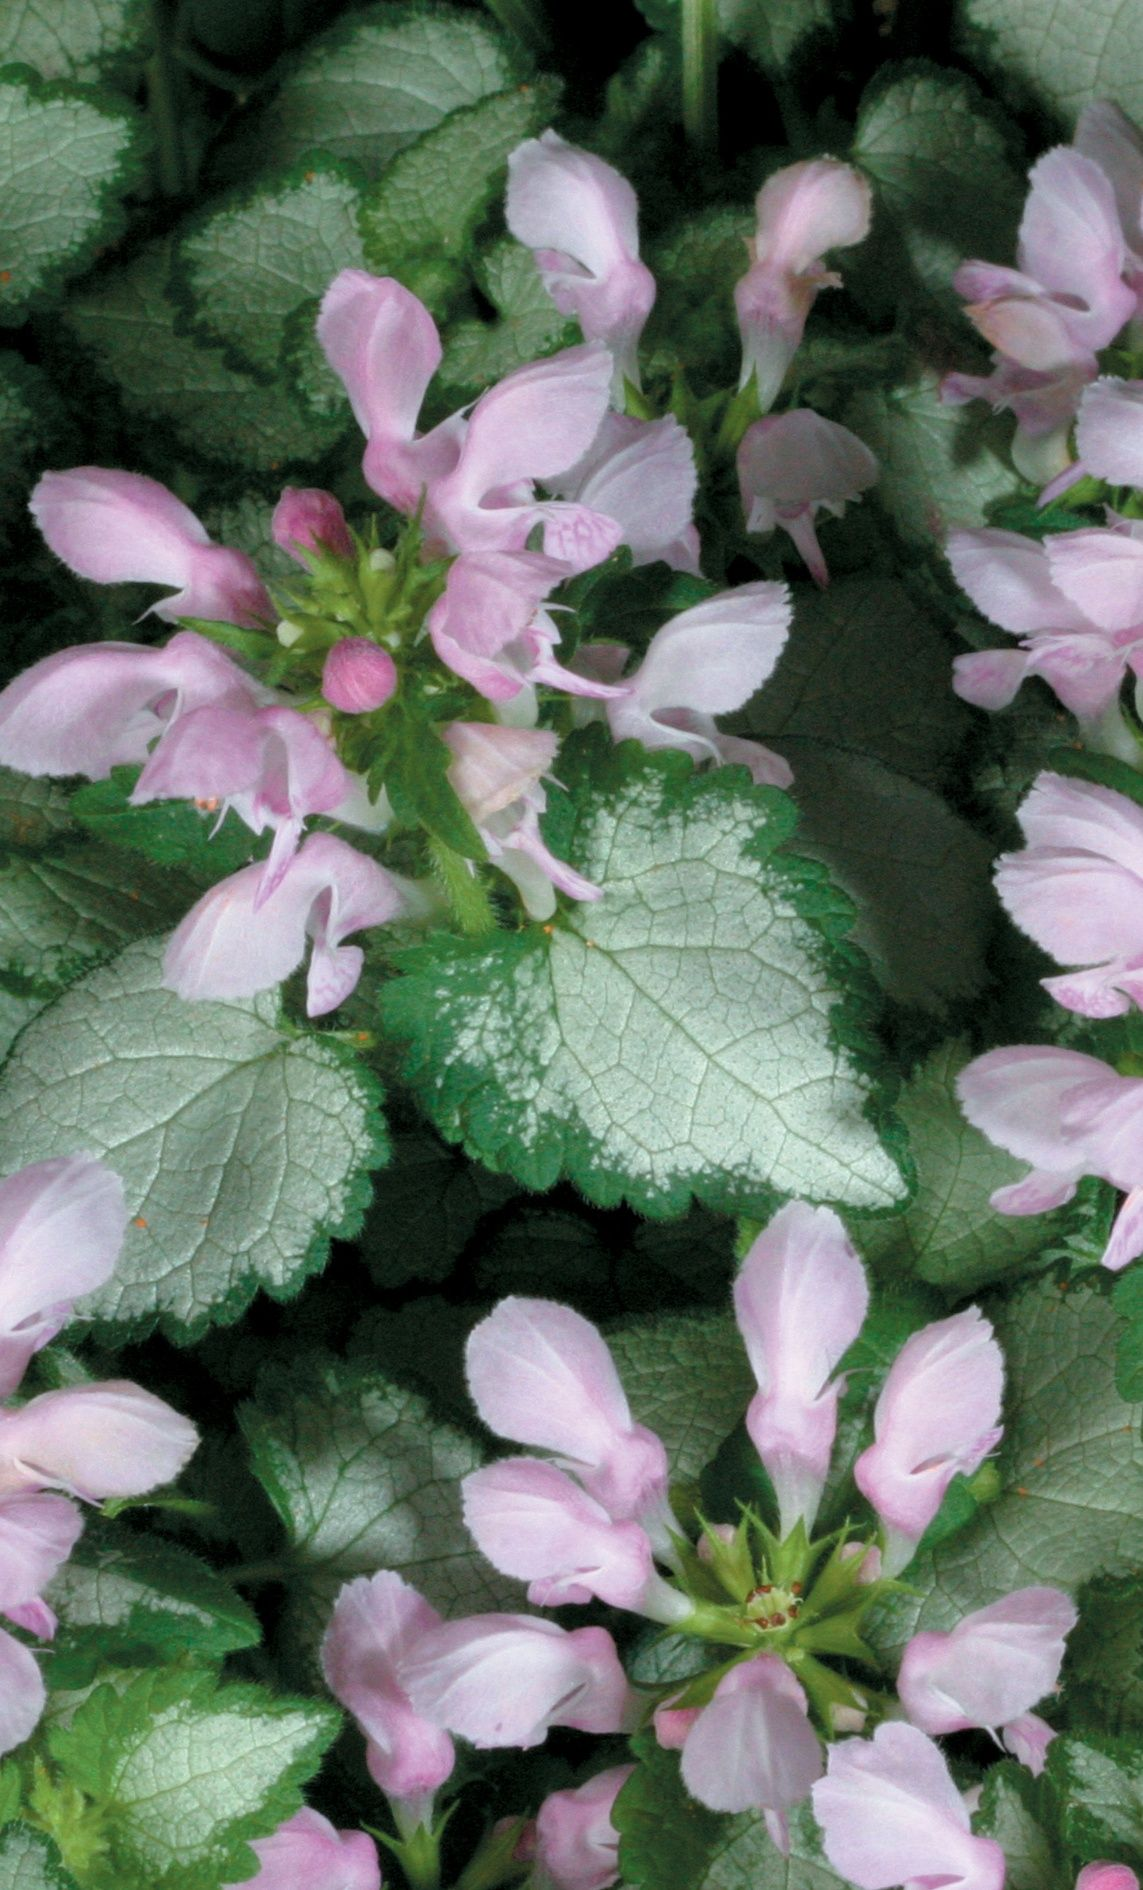 Pink Chablis Dead Nettle Lamium Maculatum Ground Covering